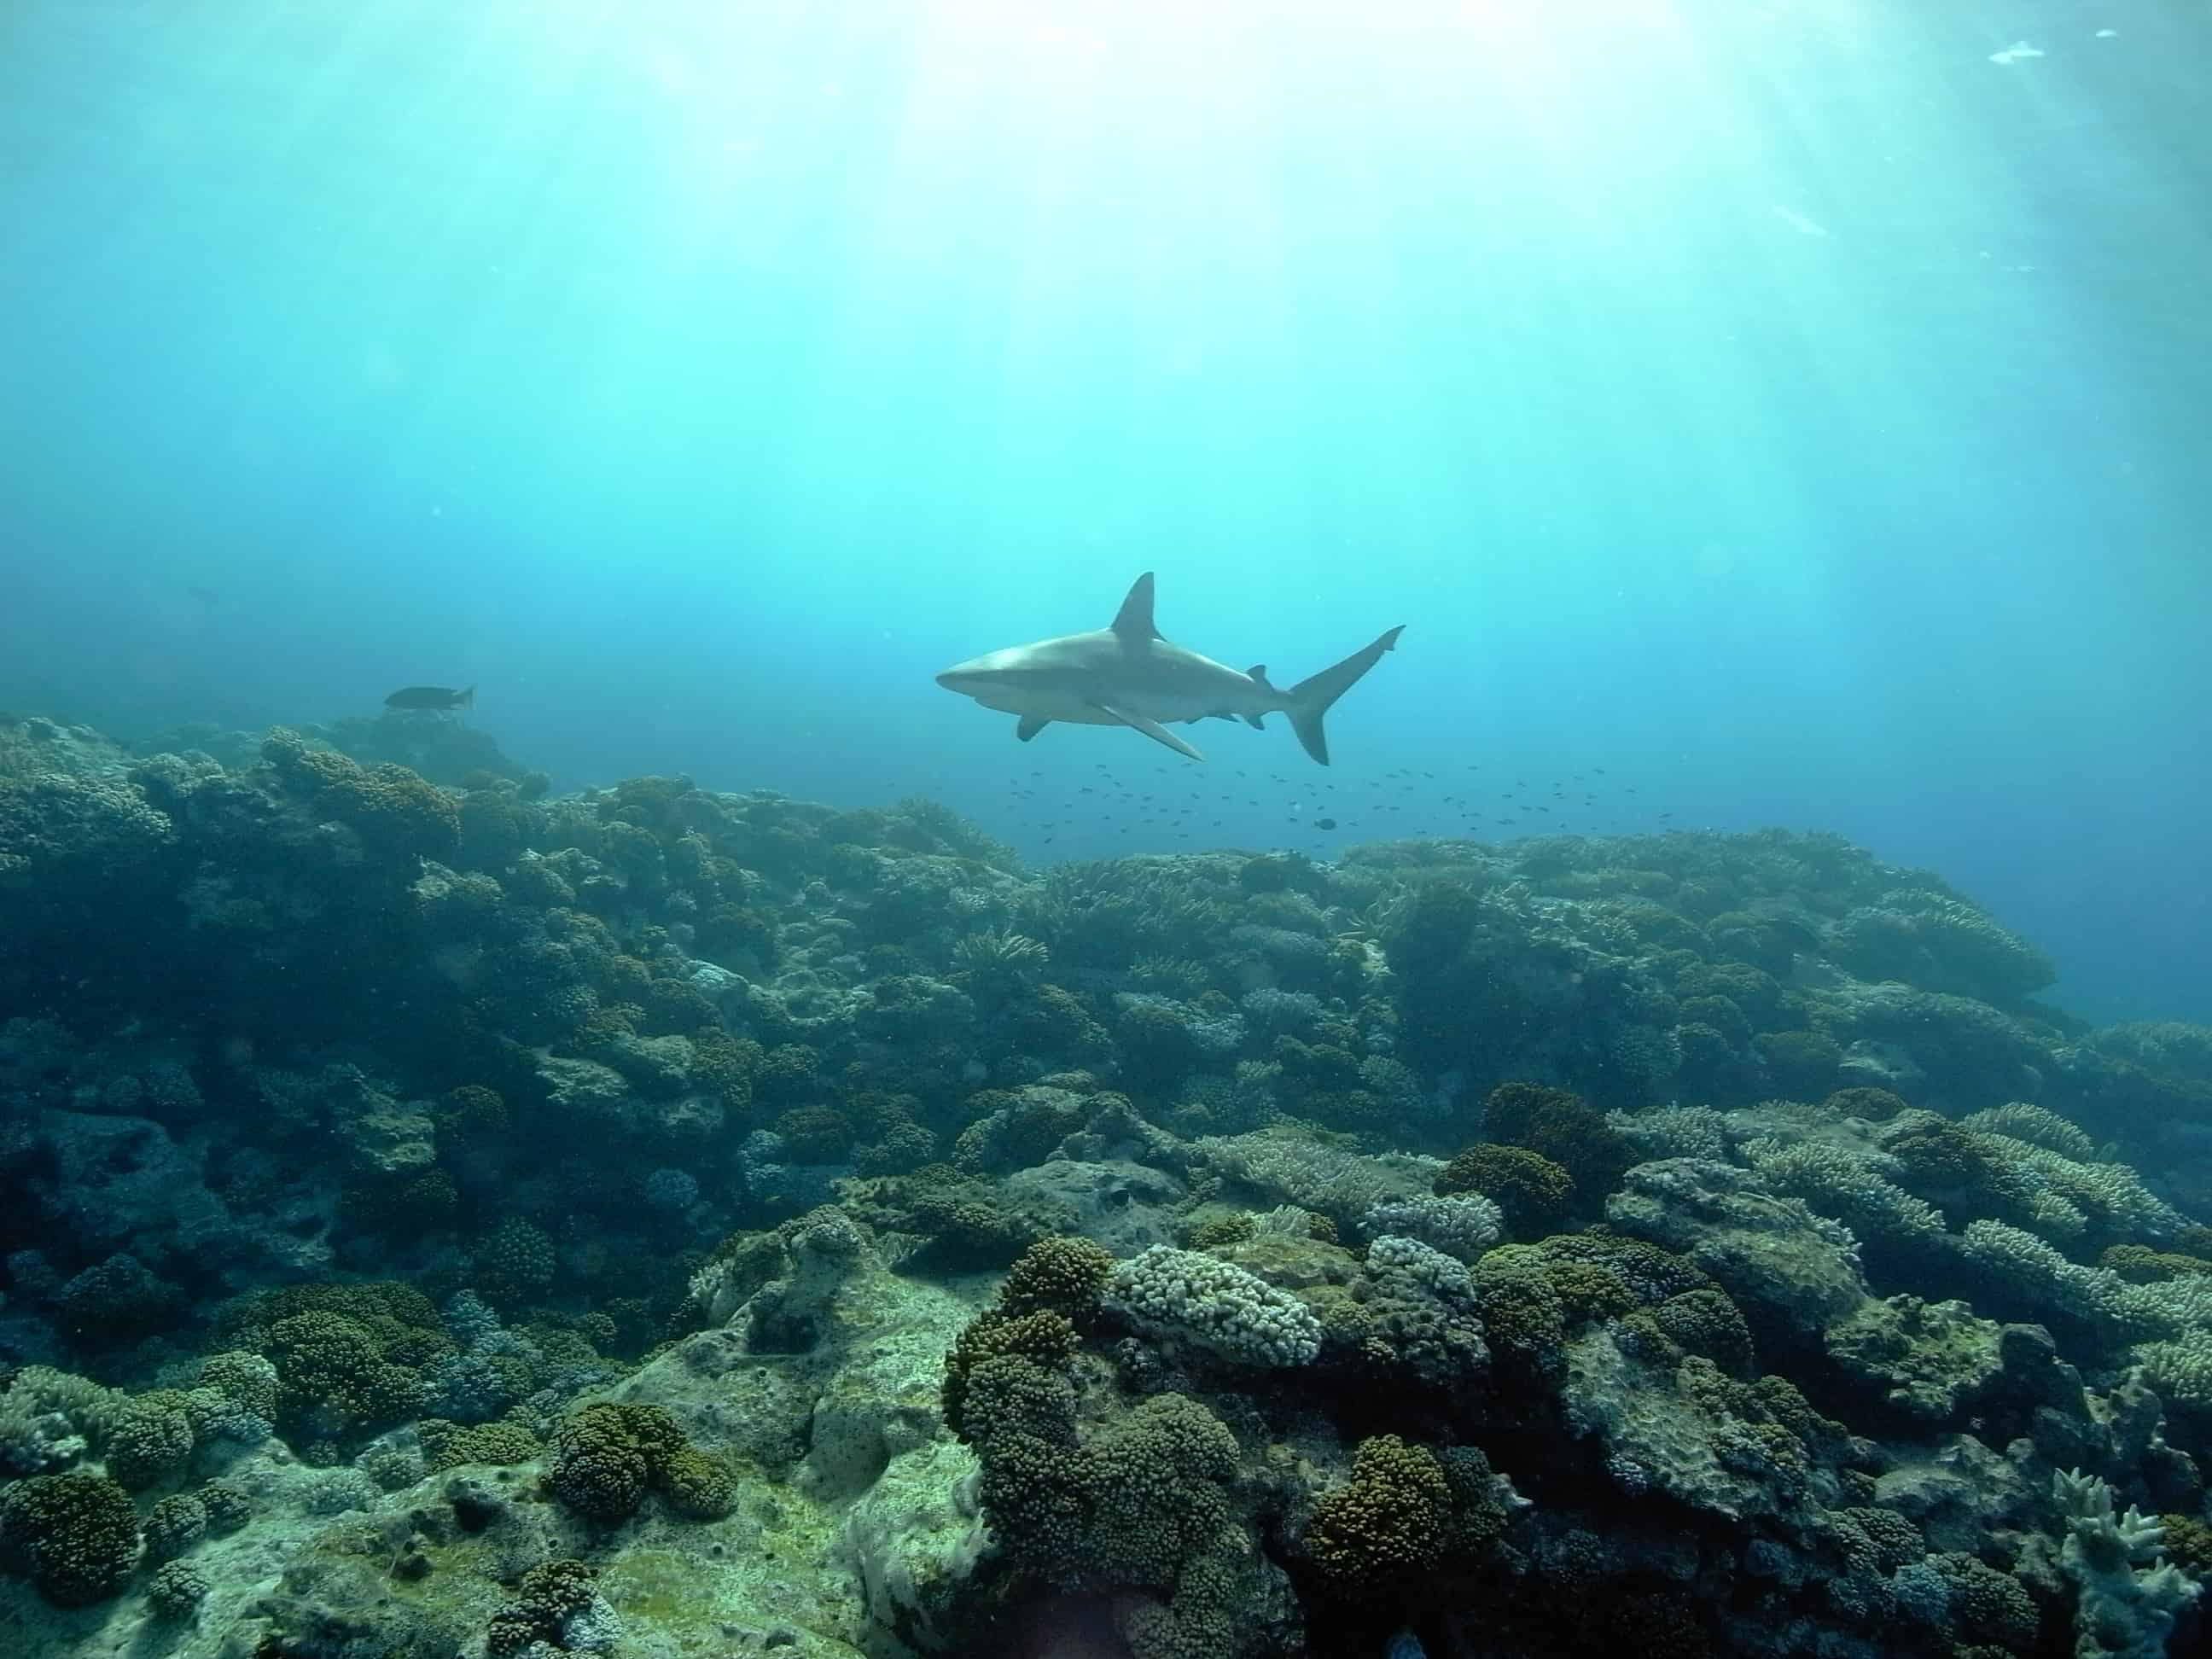 Gray reef shark patrols over the coral reef and below SV Southern Cross, Ducie Island. Copyright: Capt. Paul Green